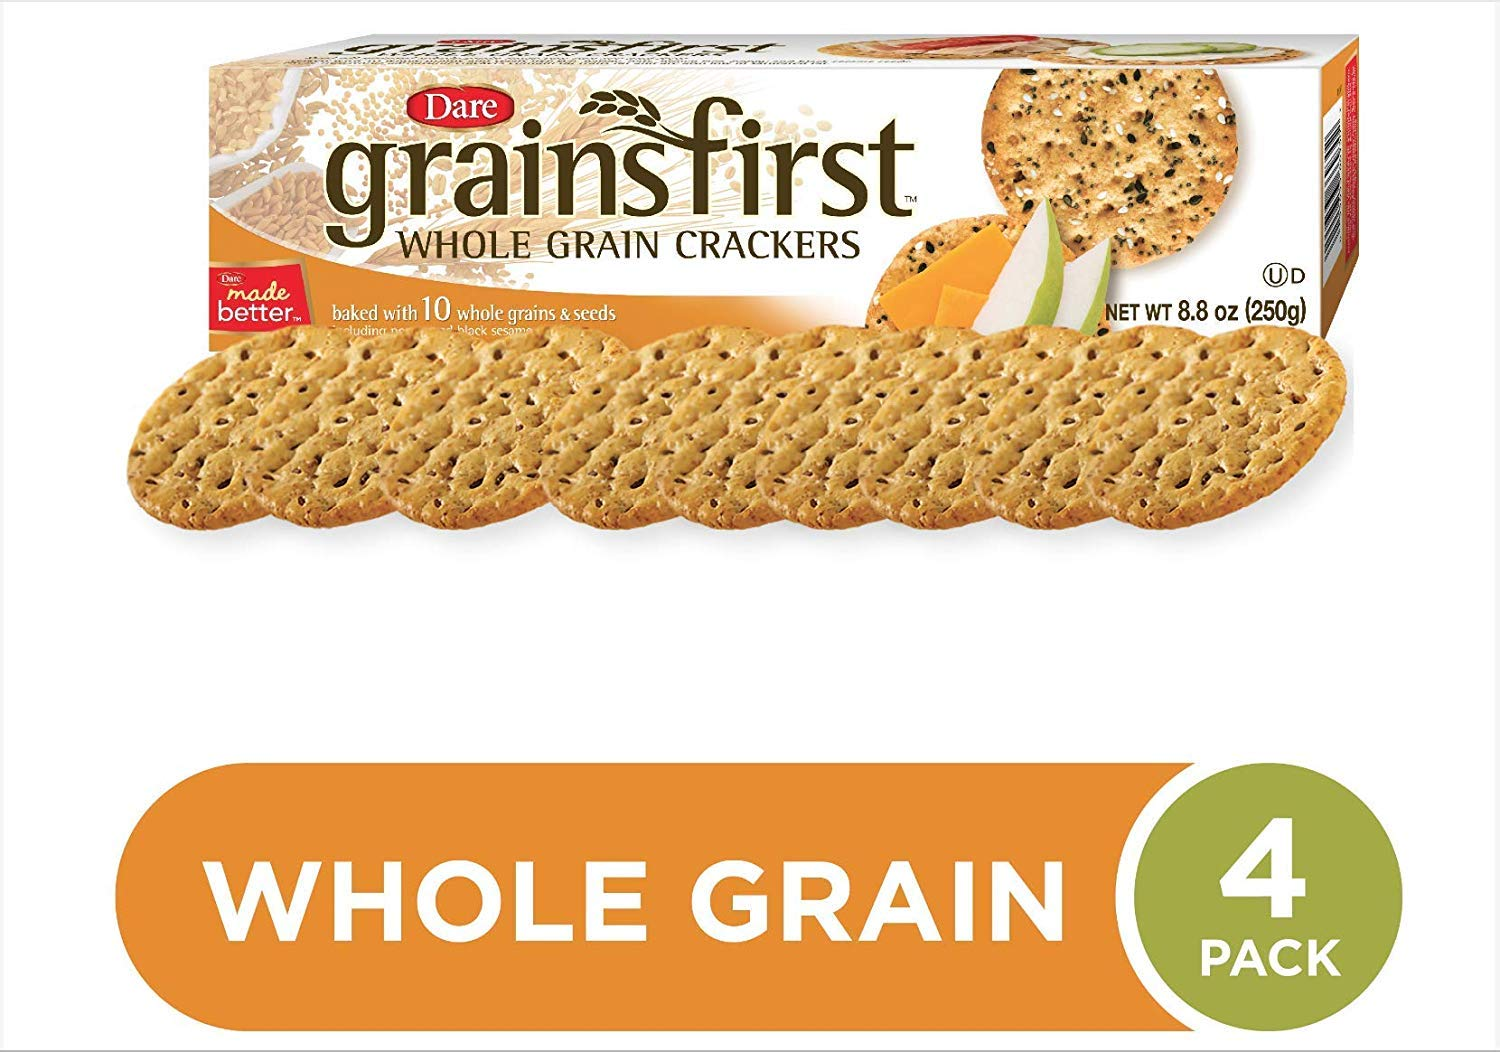 Dare Grainsfirst Whole Grain Crackers, 8.4 oz (Pack of 4) - 100% Natural - Baked with 10 Whole Grains and Seeds - Robust Multigrain Taste - 6g of Whole Grains Per Serving - Delicious Plain or Topped by Dare